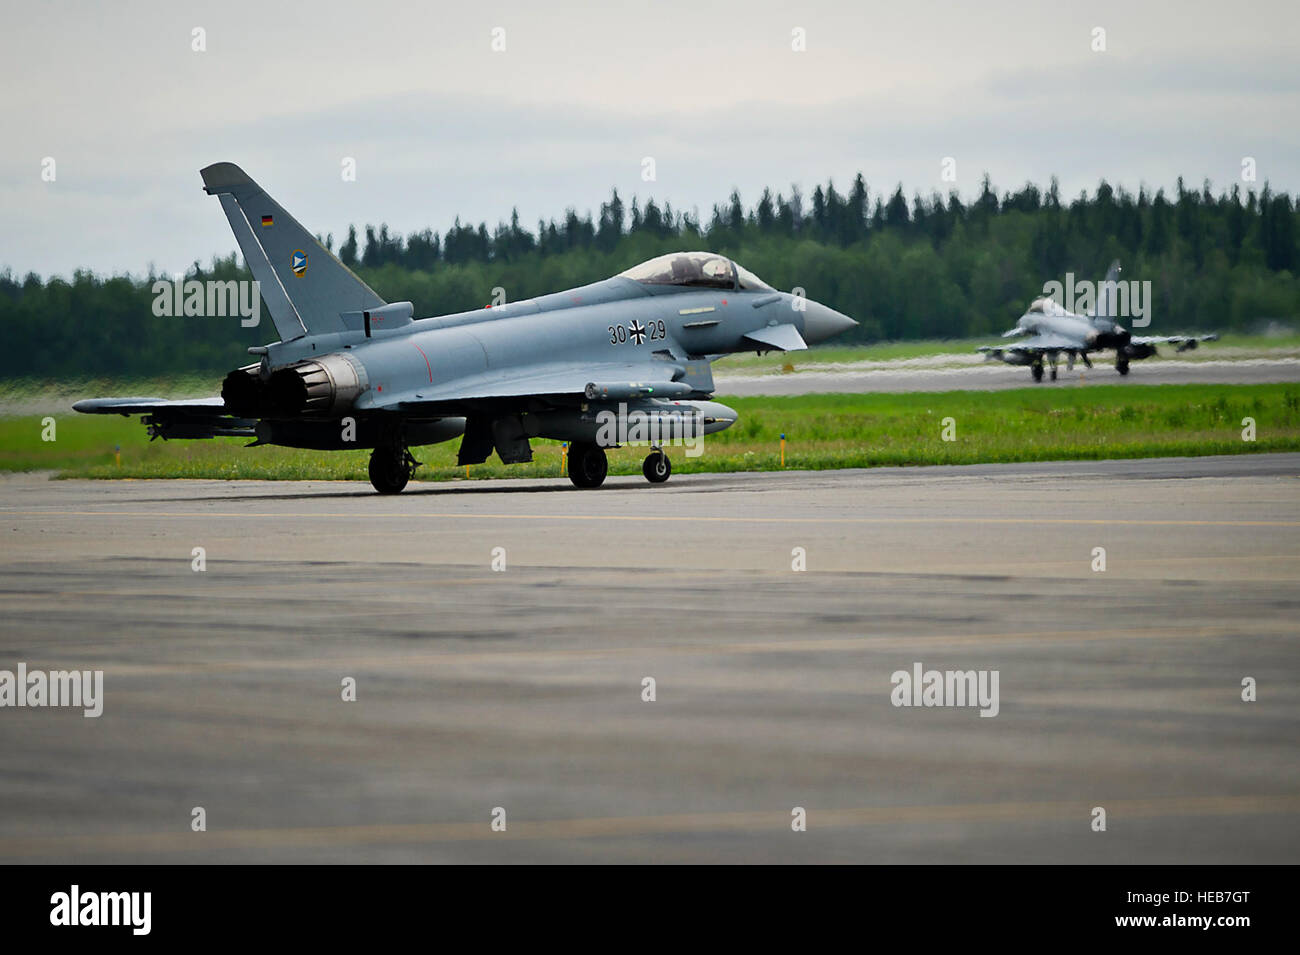 Two German air force Eurofighter Typhoon's taxi on the flight line toward the runway at Eielson Air Force Base, Stock Photo